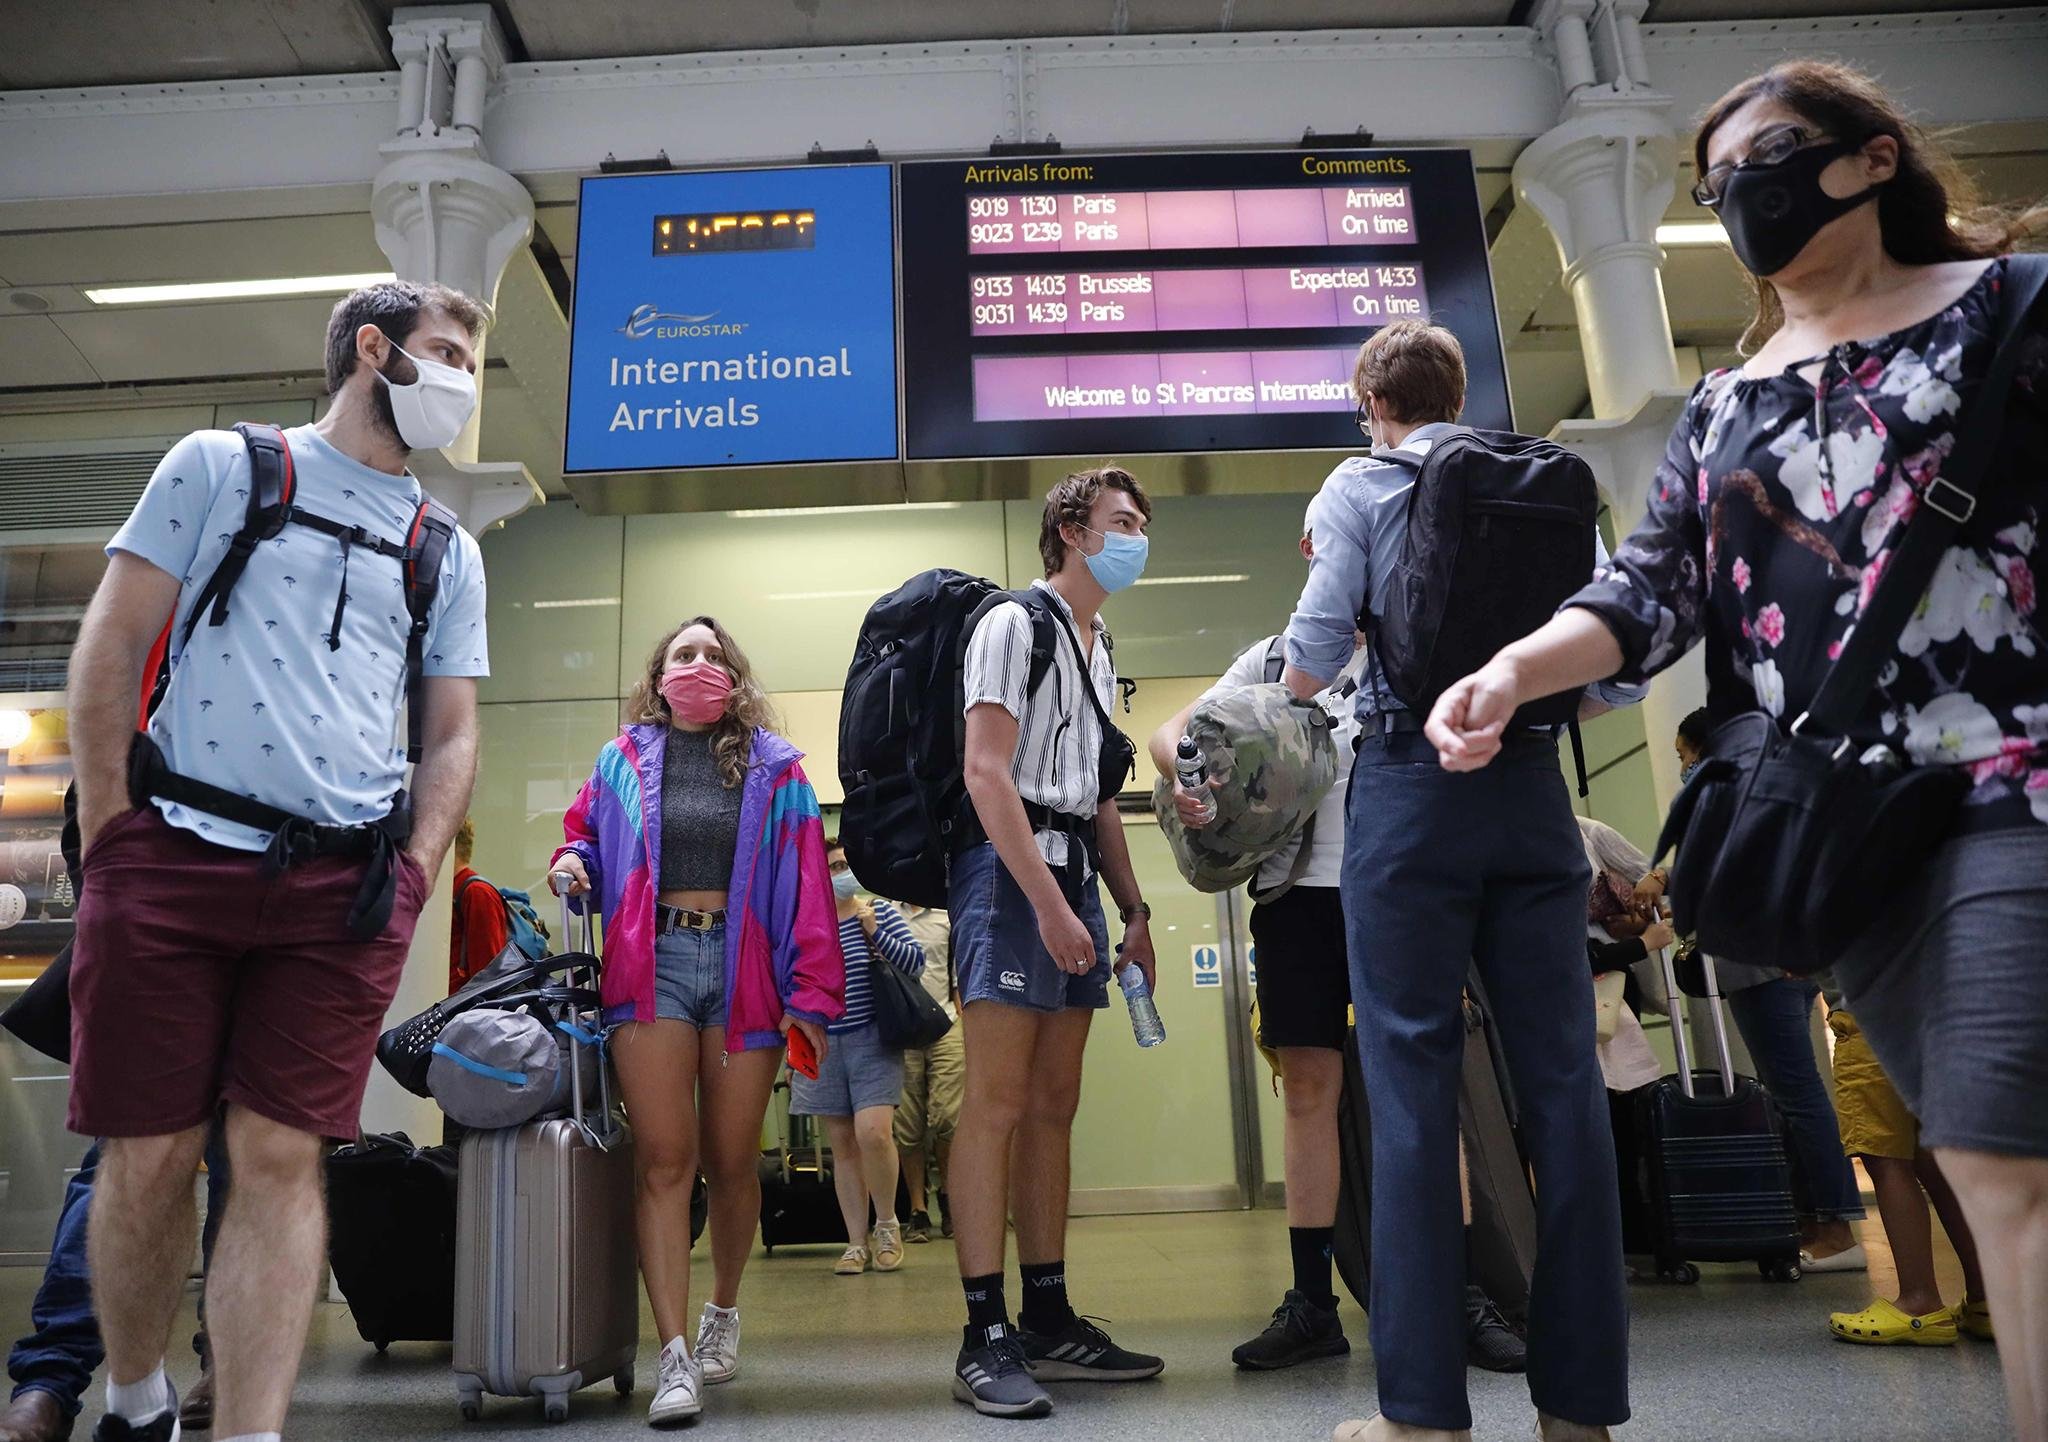 Holidaymakers beat France quarantine deadline with minutes to spare - follow live